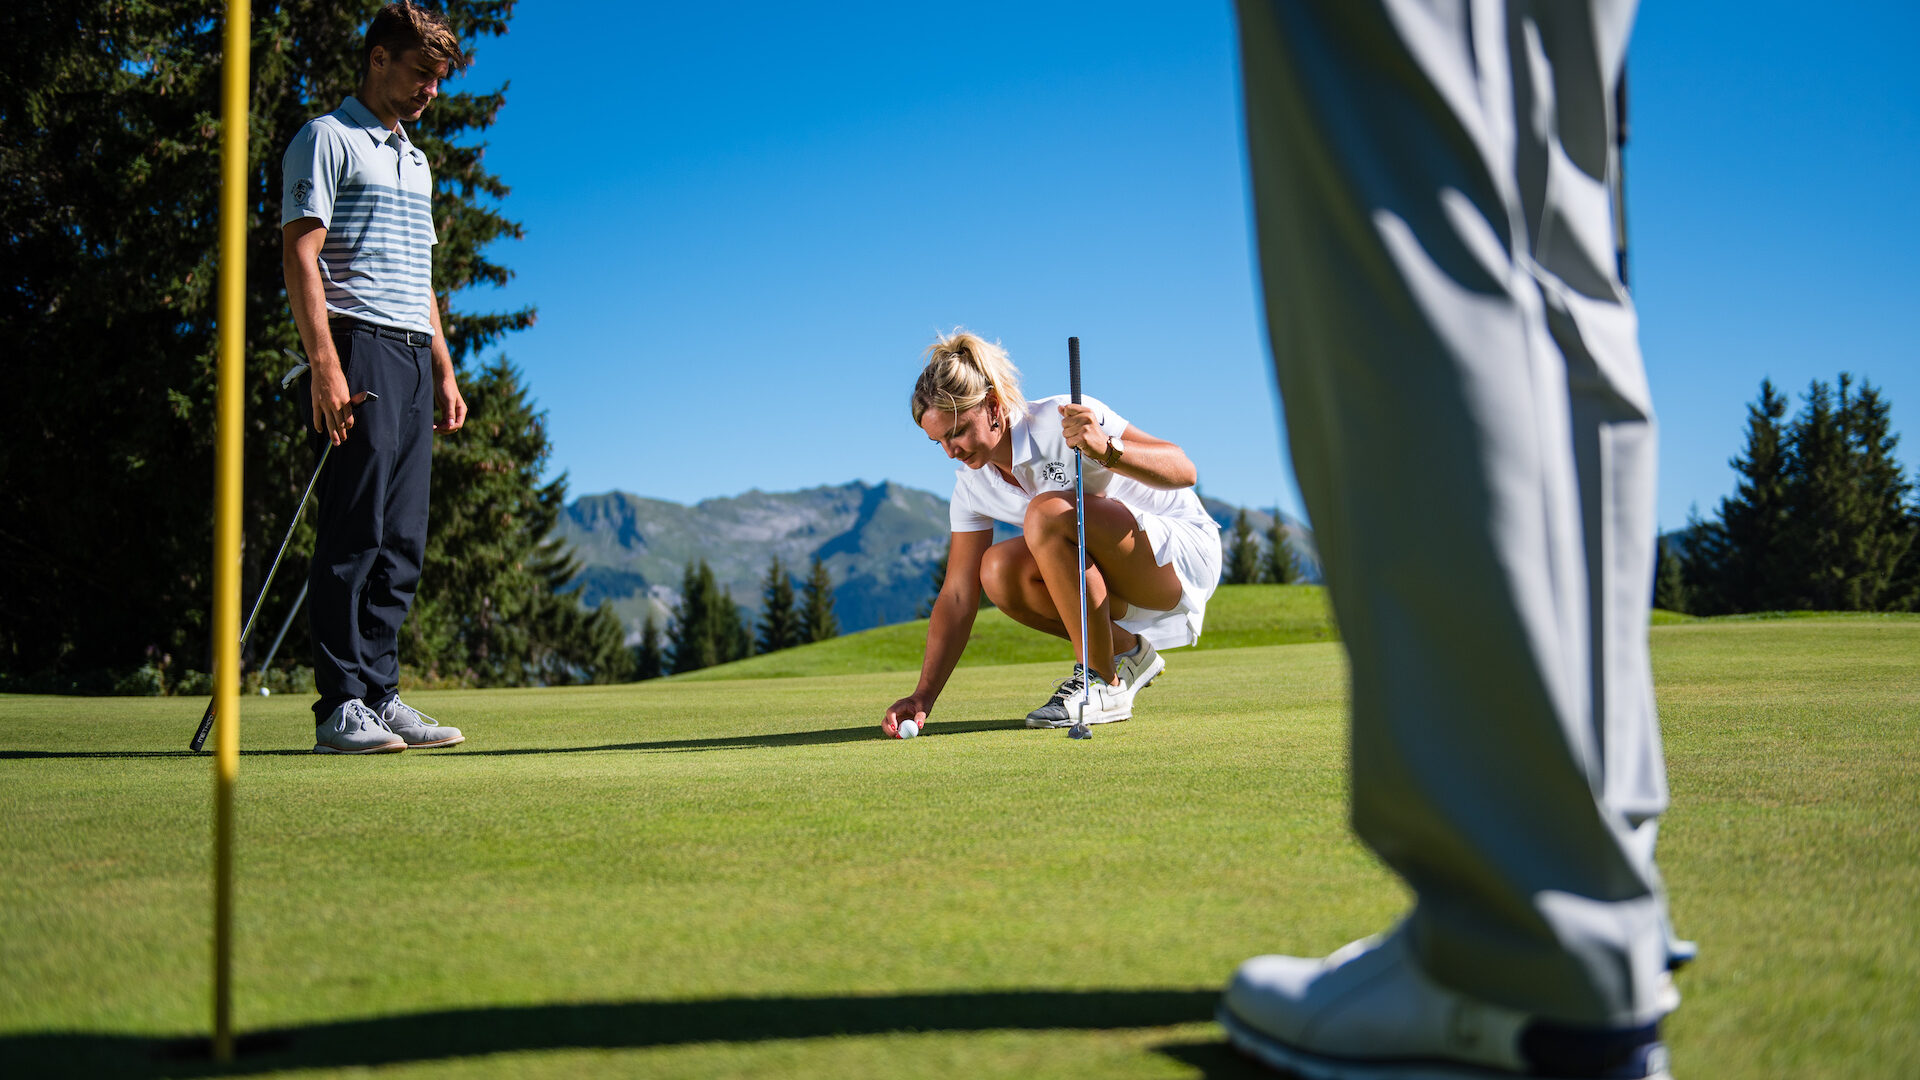 Three people playing golf with a woman putting the ball down.